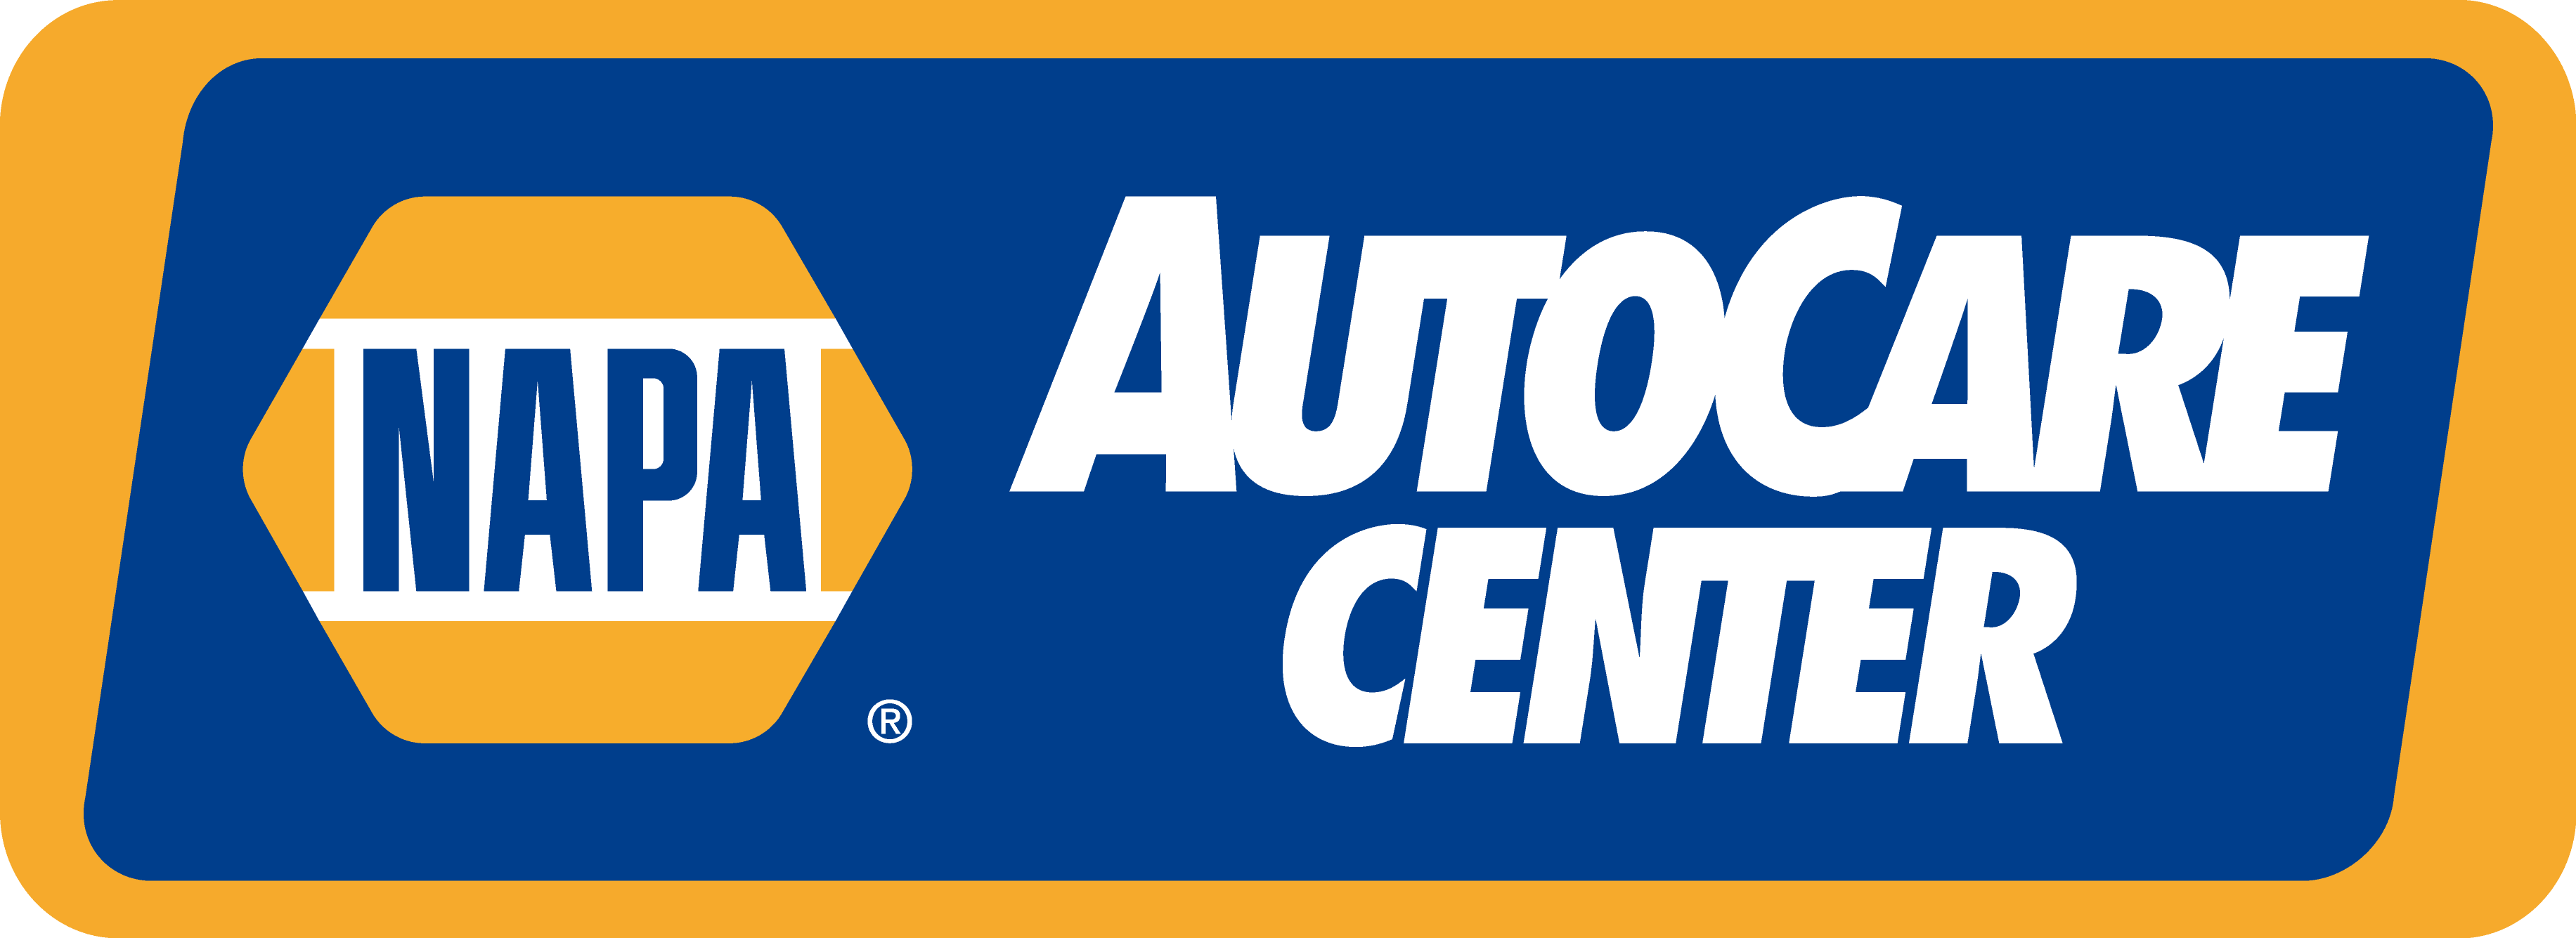 NAPA Auto Care Center, Richardson Auto Repair, Niagara Falls, NY, 14304